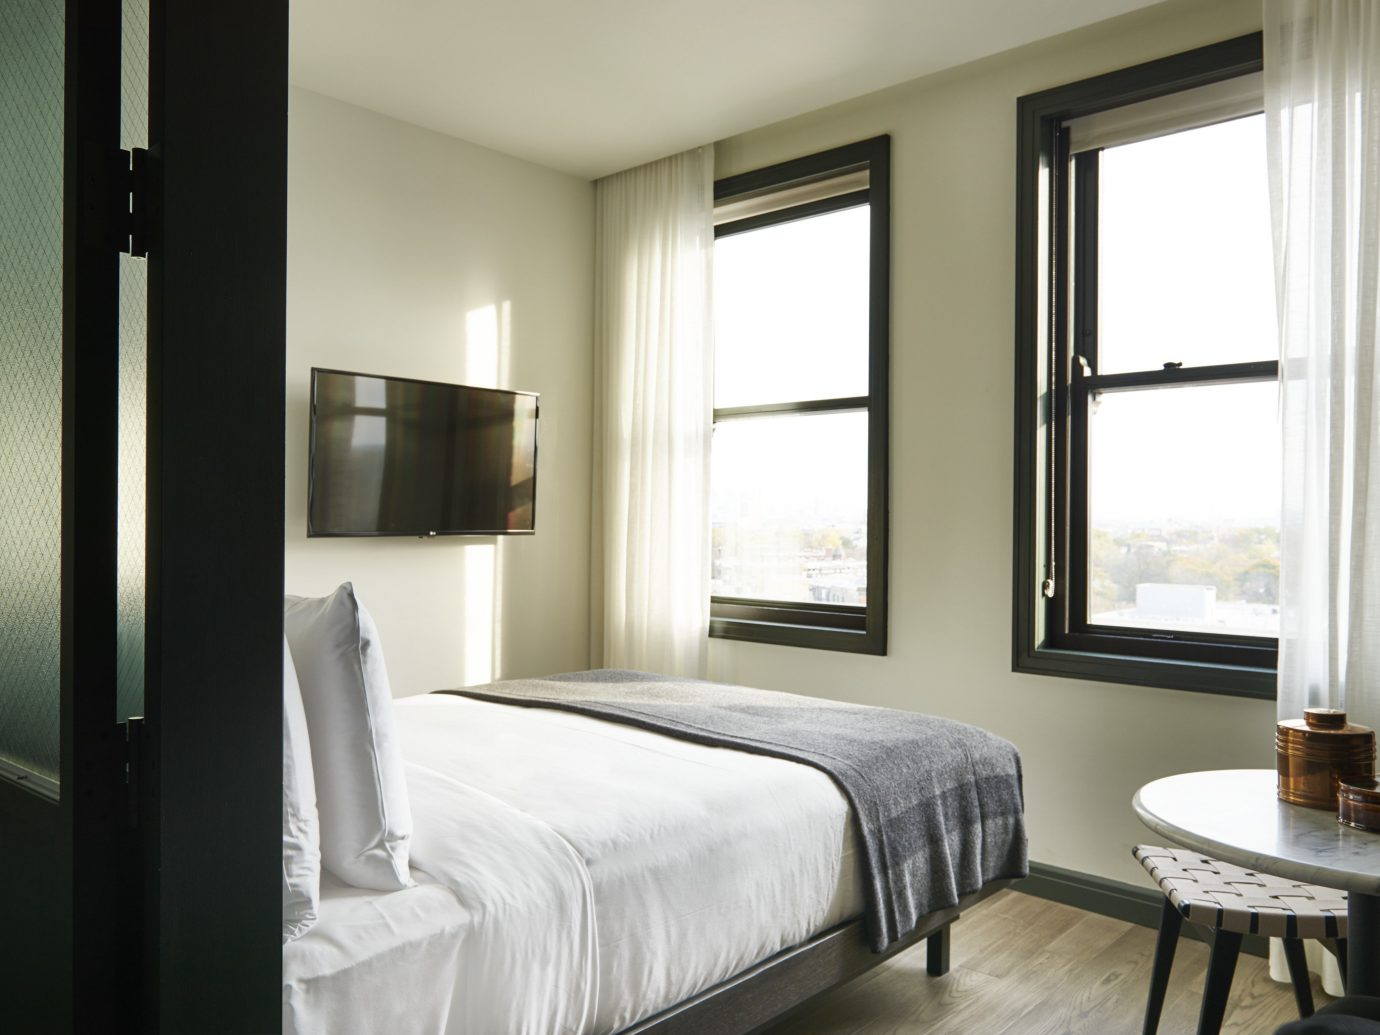 Boutique Hotels Chicago Hotels indoor bed wall hotel window floor room Bedroom property ceiling Suite interior design home real estate condominium estate cottage apartment living room lamp